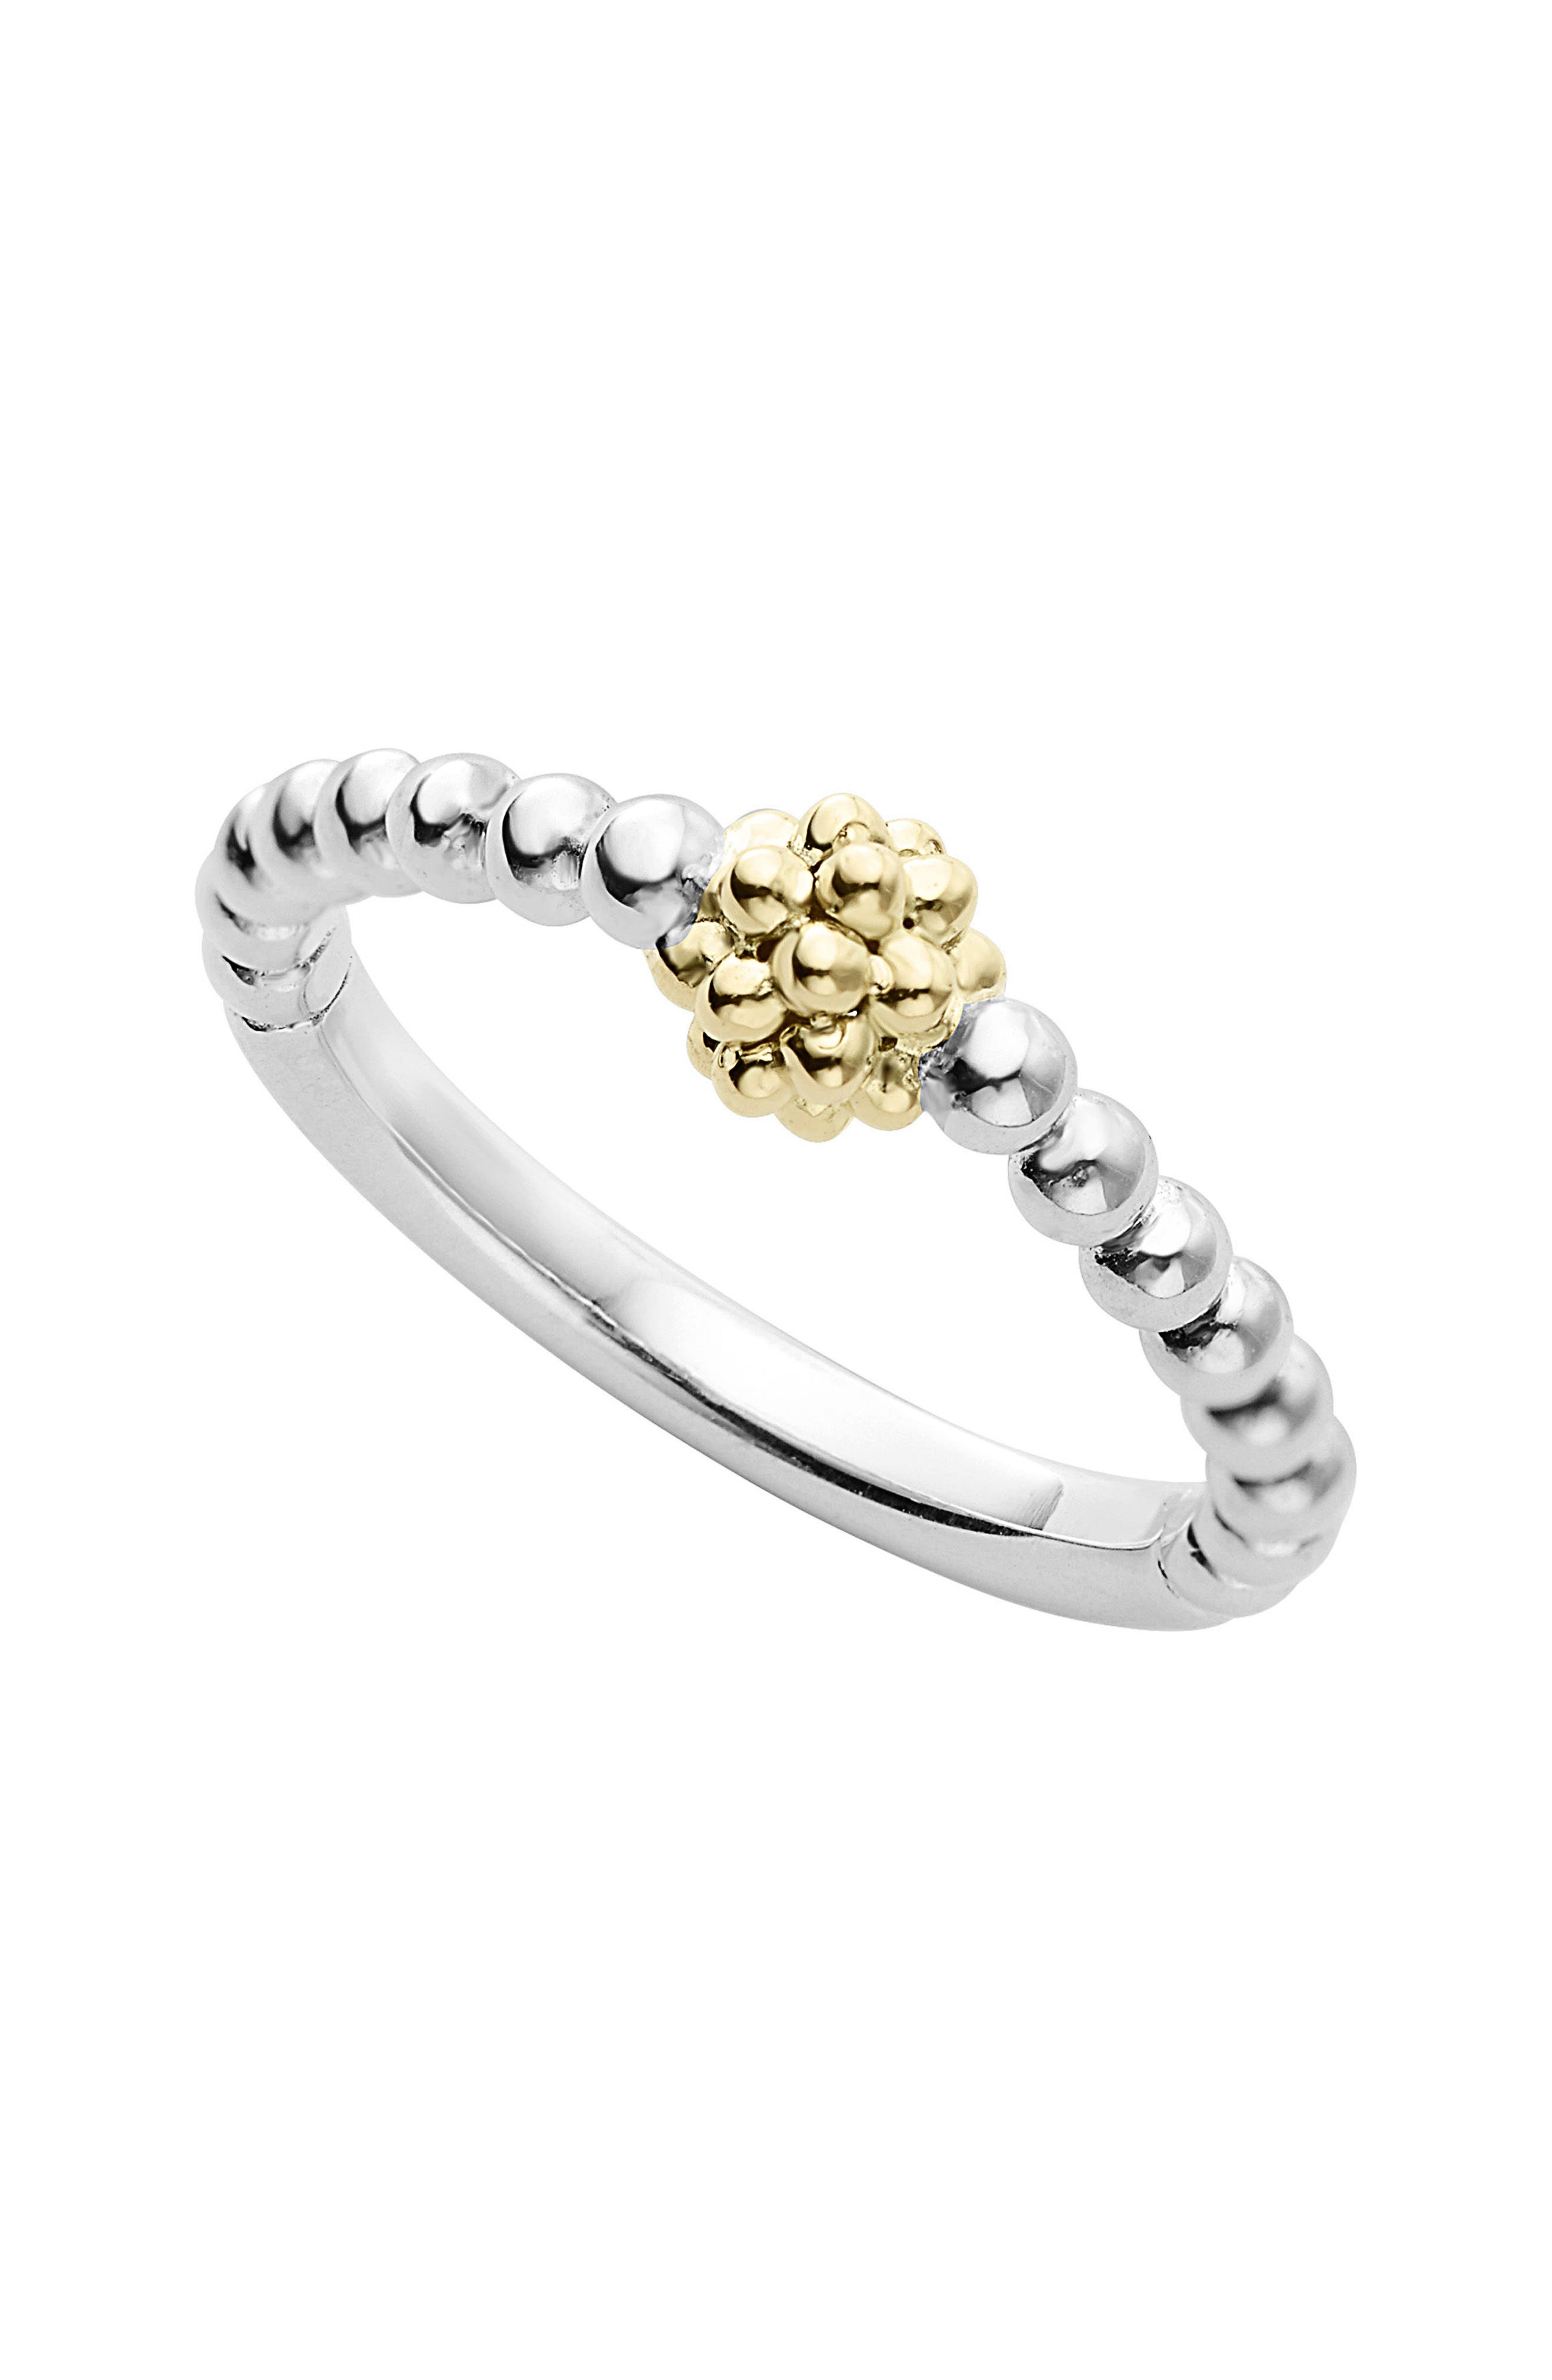 Caviar Icon Stacking Ring,                             Main thumbnail 1, color,                             SILVER/ GOLD